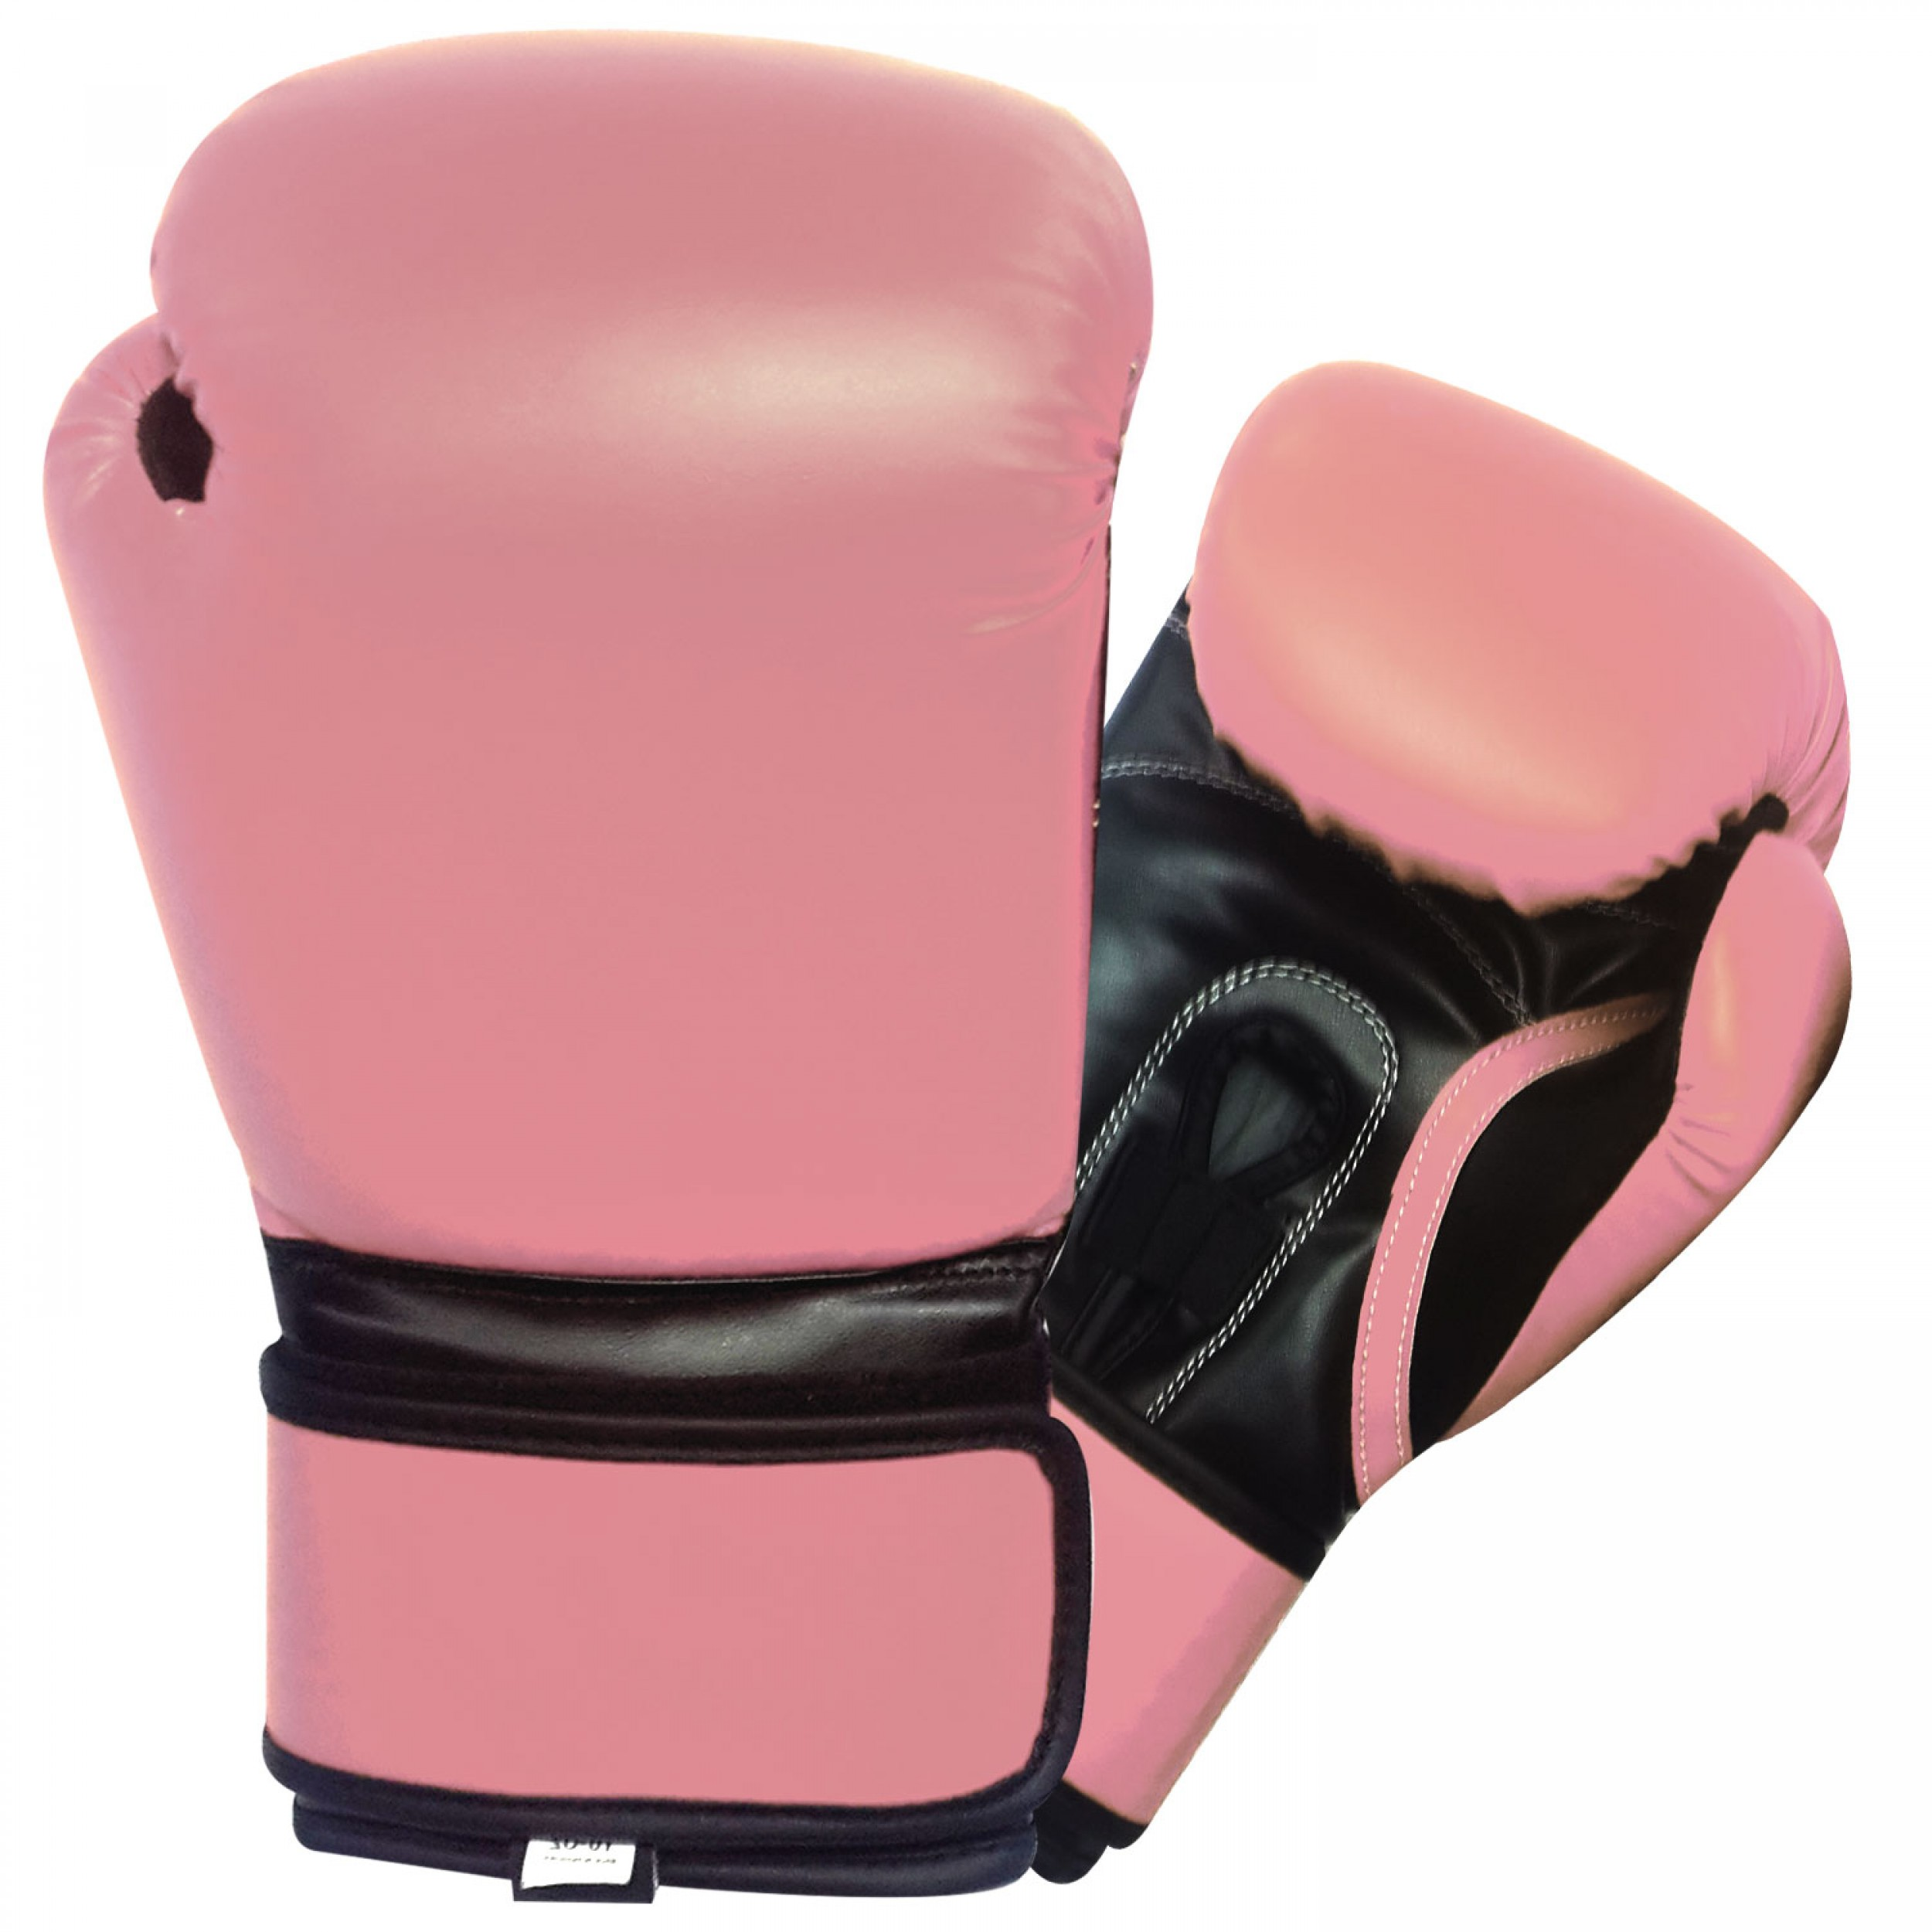 Boking Gloves: Pink And Black 12oz Boxing Gloves For Medium To Large Size